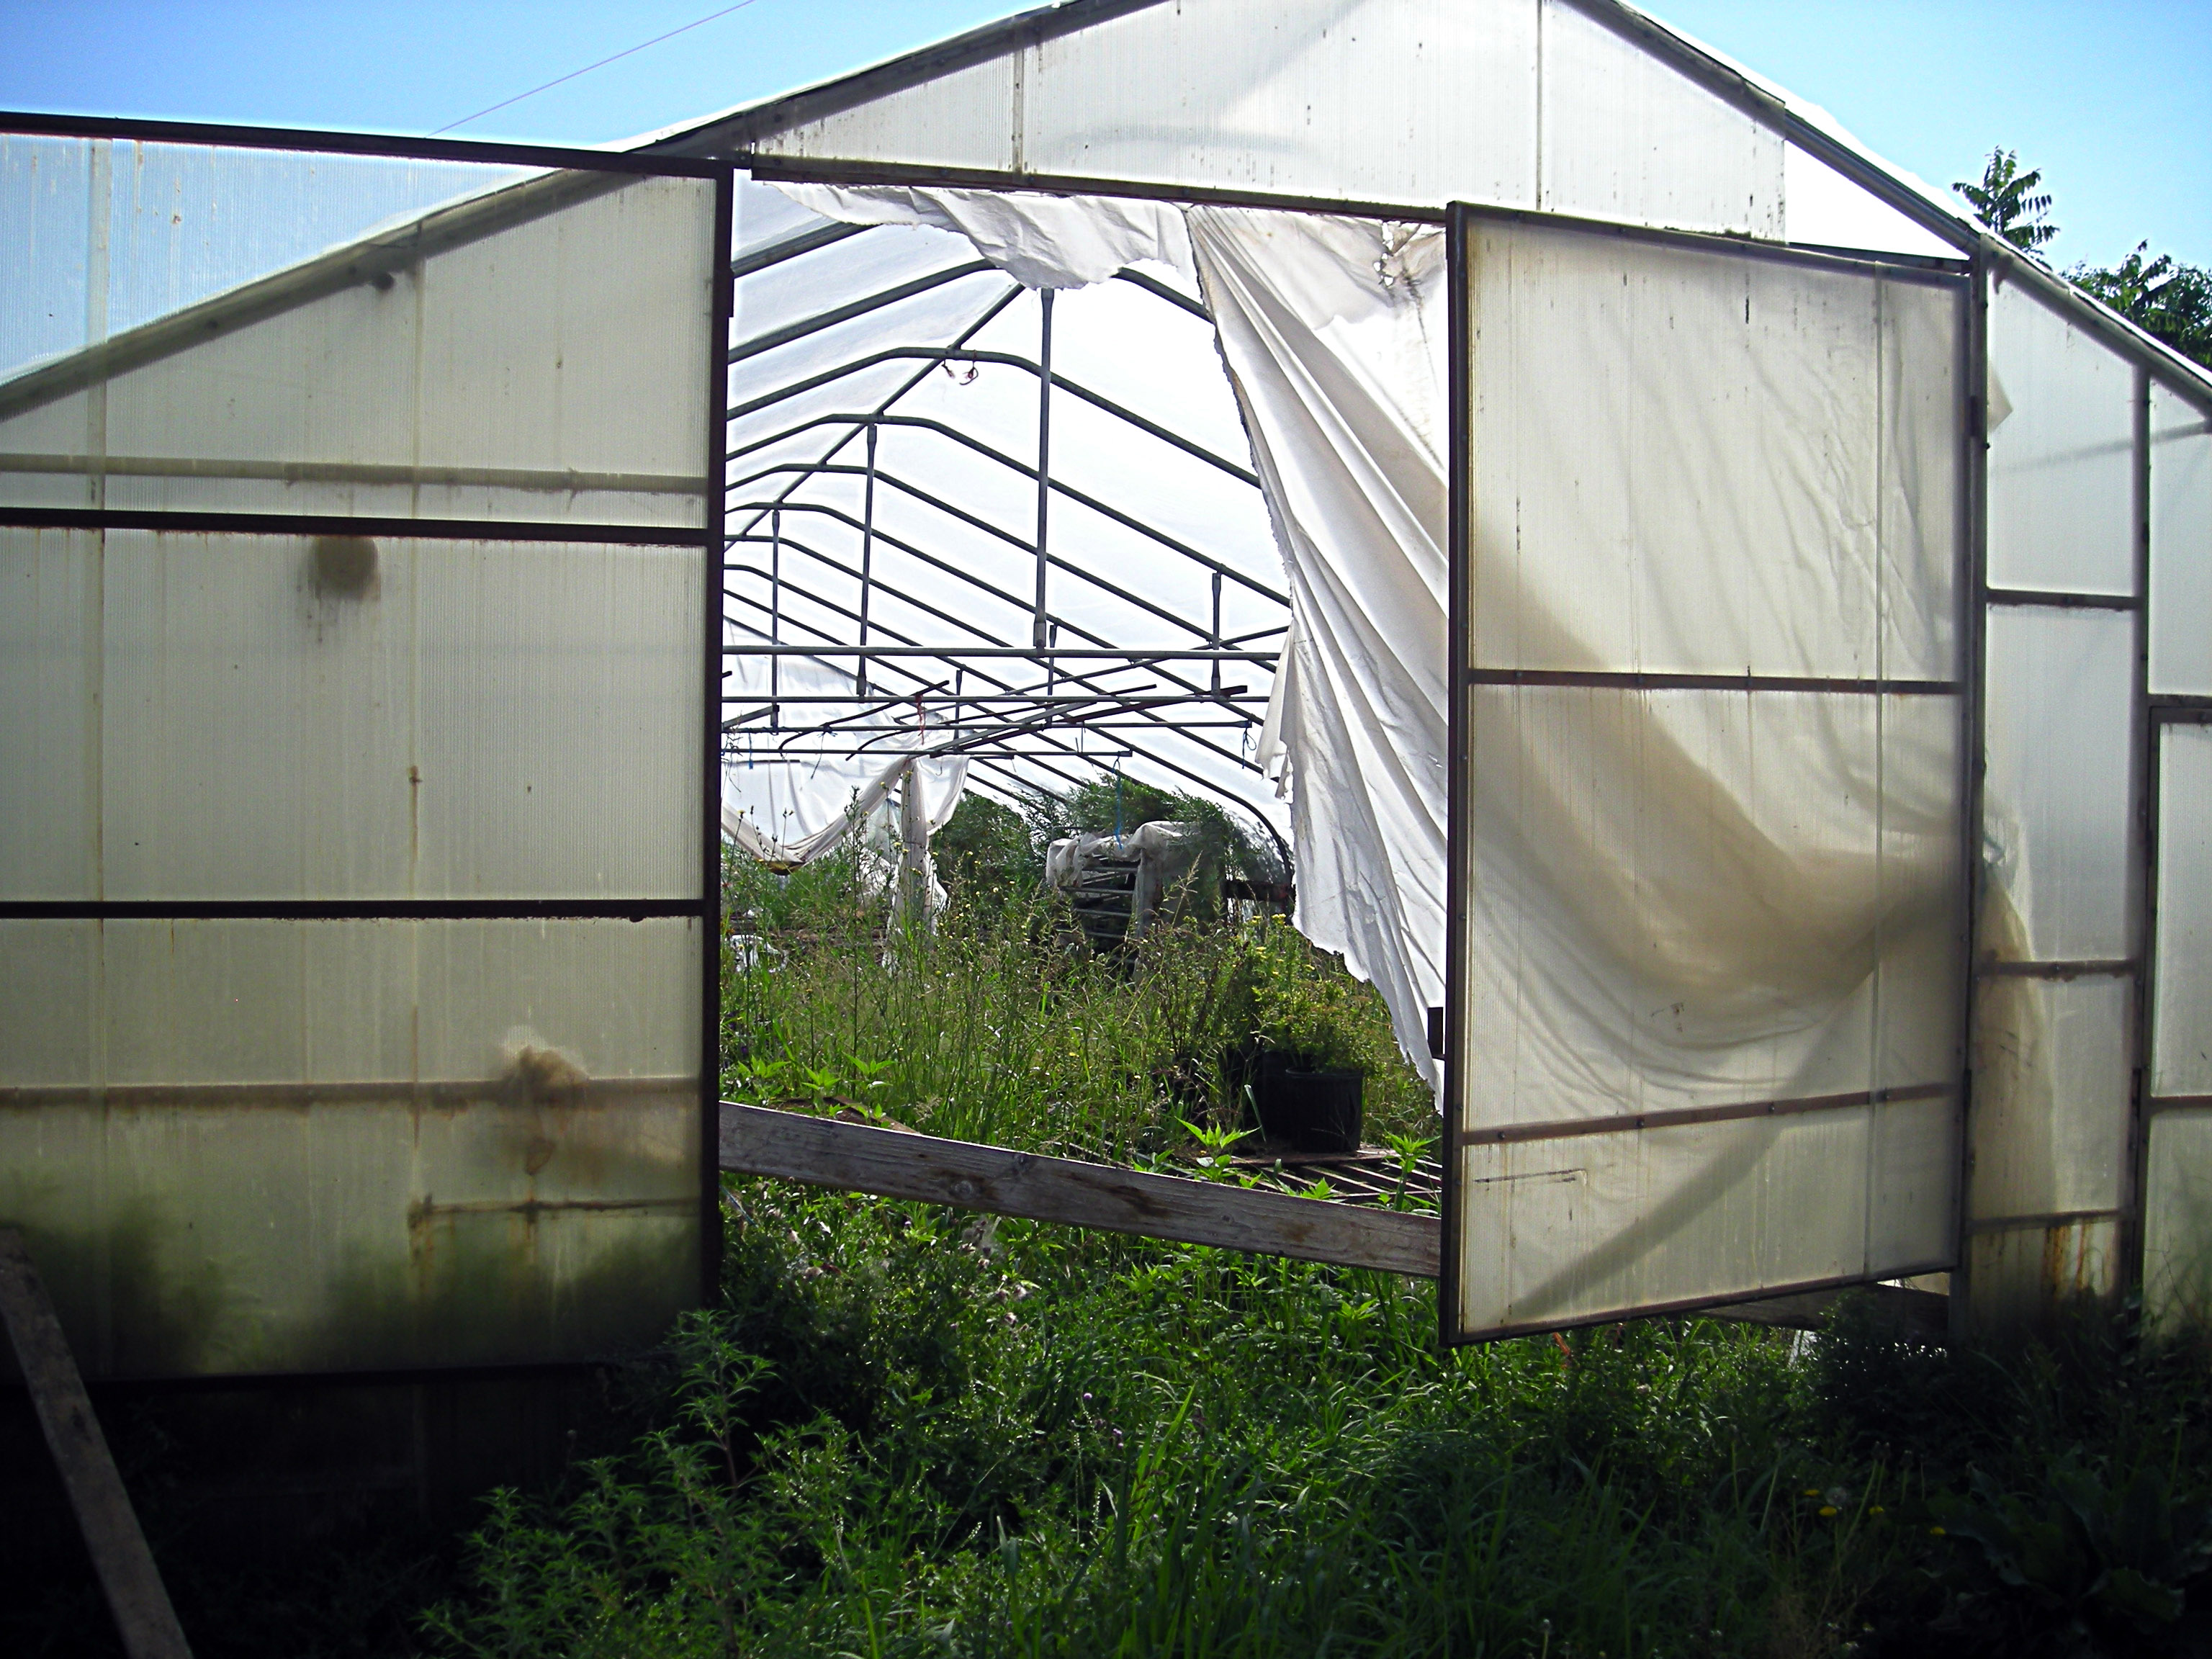 Old Greenhouse, Broken, Greenhouse, Old, HQ Photo